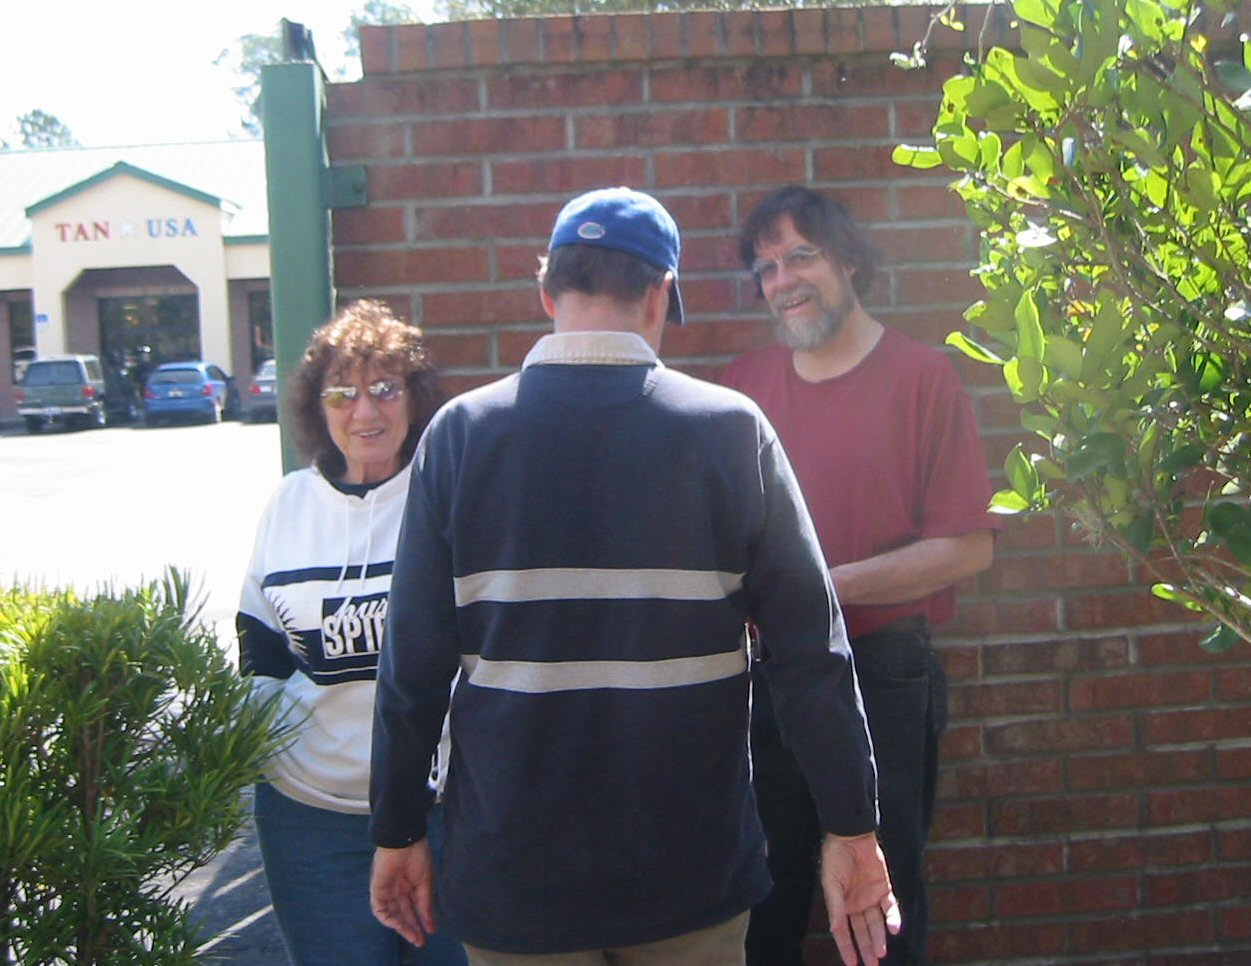 Greg, Priscilla (Kiki's Mom) and Gordon are close to the hiding place of the first cache